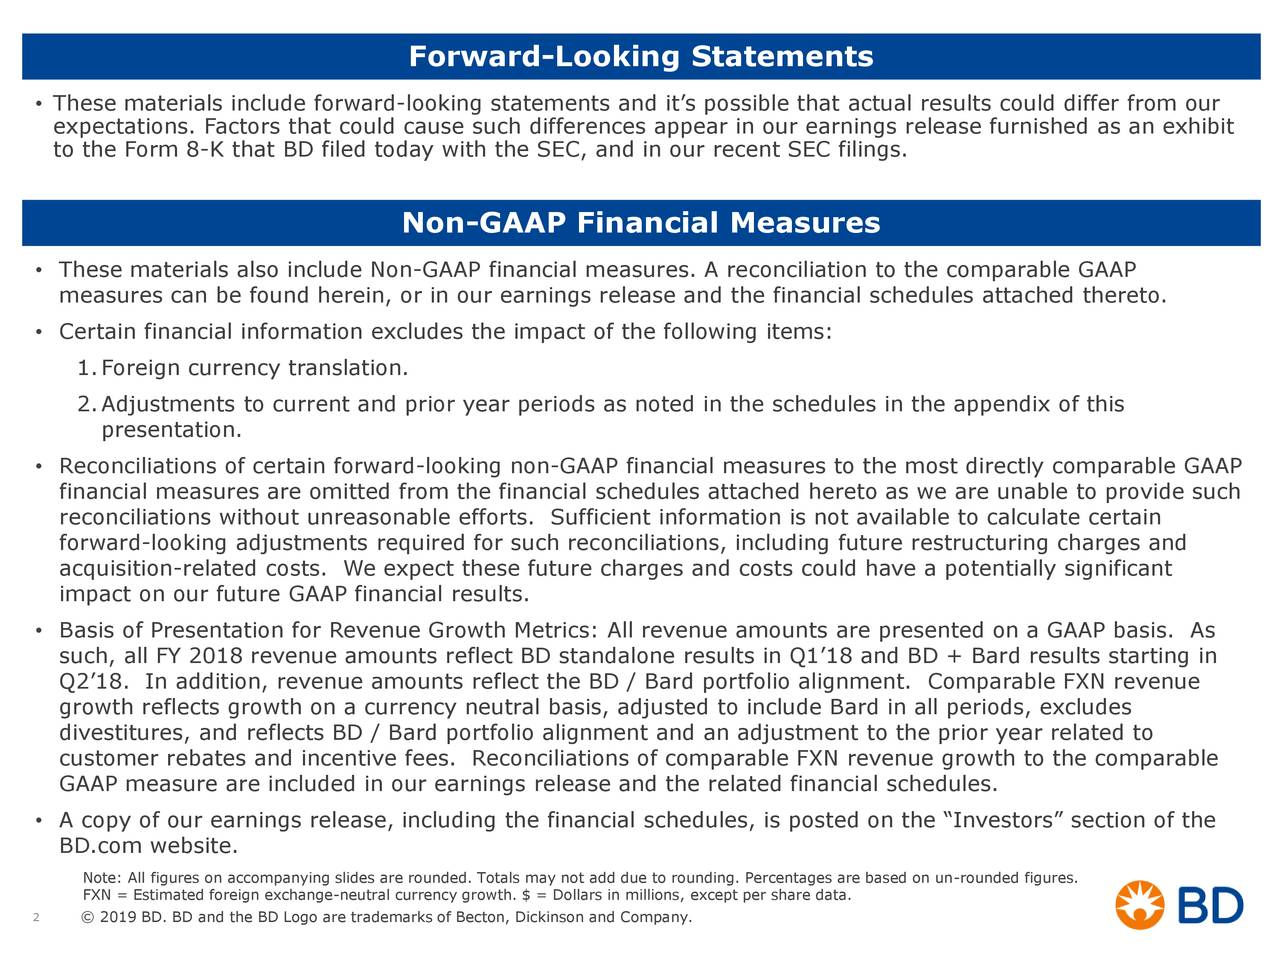 • These materials include forward-looking statements and it's possible that actual results could differ from our expectations. Factors that could cause such differences appear in our earnings release furnished as an exhibit to the Form 8-K that BD filed today with the SEC, and in our recent SEC filings. Non-GAAP Financial Measures • These materials also include Non-GAAP financial measures. A reconciliation to the comparable GAAP measures can be found herein, or in our earnings release and the financial schedules attached thereto. • Certain financial information excludes the impact of the following items: 1.Foreign currency translation. 2.Adjustments to current and prior year periods as noted in the schedules in the appendix of this presentation. • Reconciliations of certain forward-looking non-GAAP financial measures to the most directly comparable GAAP financial measures are omitted from the financial schedules attached hereto as we are unable to provide such reconciliations without unreasonable efforts. Sufficient information is not available to calculate certain forward-looking adjustments required for such reconciliations, including future restructuring charges and acquisition-related costs. We expect these future charges and costs could have a potentially significant impact on our future GAAP financial results. • Basis of Presentation for Revenue Growth Metrics: All revenue amounts are presented on a GAAP basis. As such, all FY 2018 revenue amounts reflect BD standalone results in Q1'18 and BD + Bard results starting in Q2'18. In addition, revenue amounts reflect the BD / Bard portfolio alignment. Comparable FXN revenue growth reflects growth on a currency neutral basis, adjusted to include Bard in all periods, excludes divestitures, and reflects BD / Bard portfolio alignment and an adjustment to the prior year related to customer rebates and incentive fees. Reconciliations of comparable FXN revenue growth to the comparable GAAP measure are included in our earn